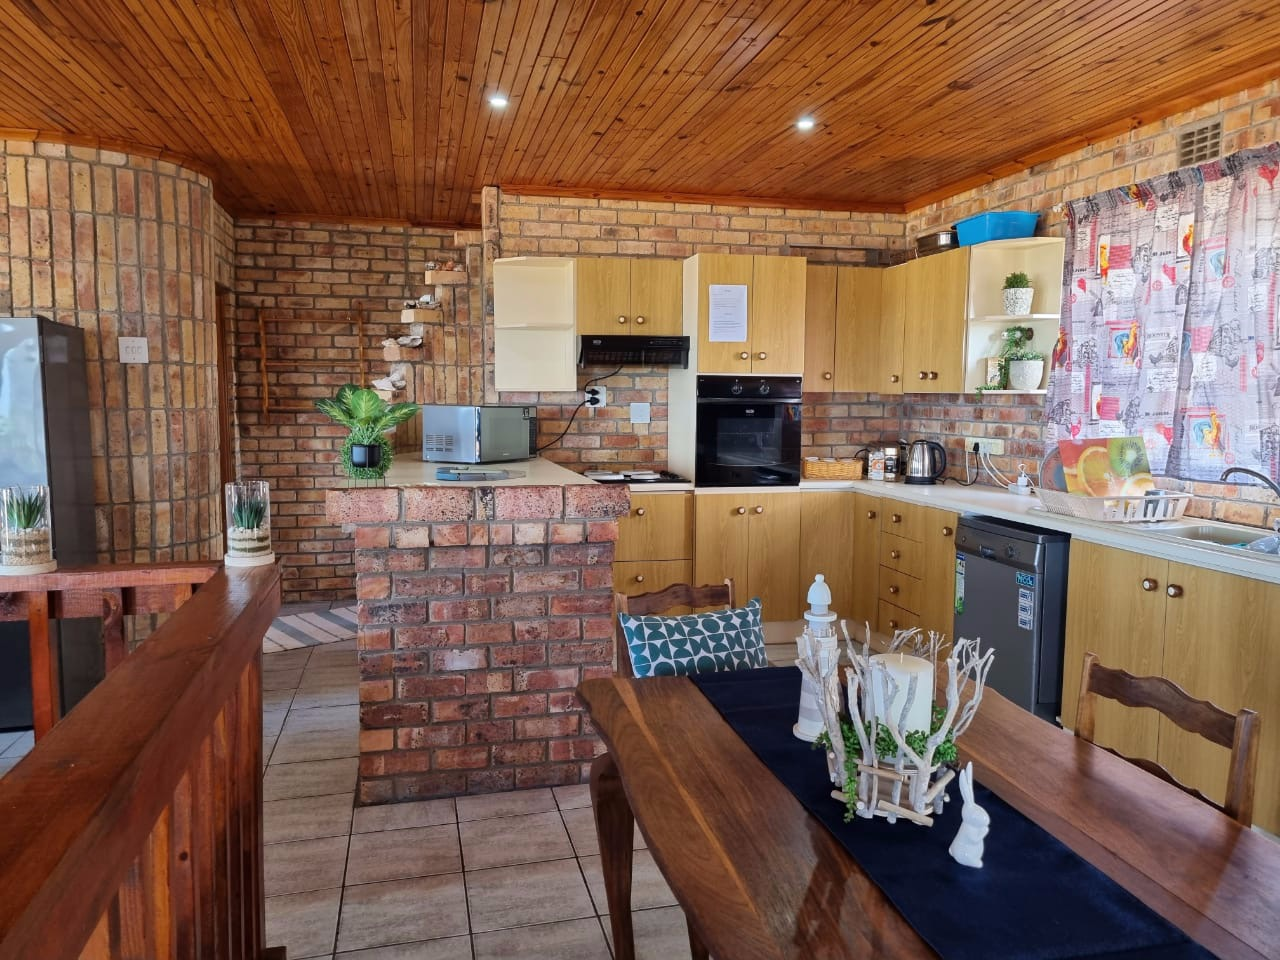 4 Bedroom House For Sale in Cannon Rocks